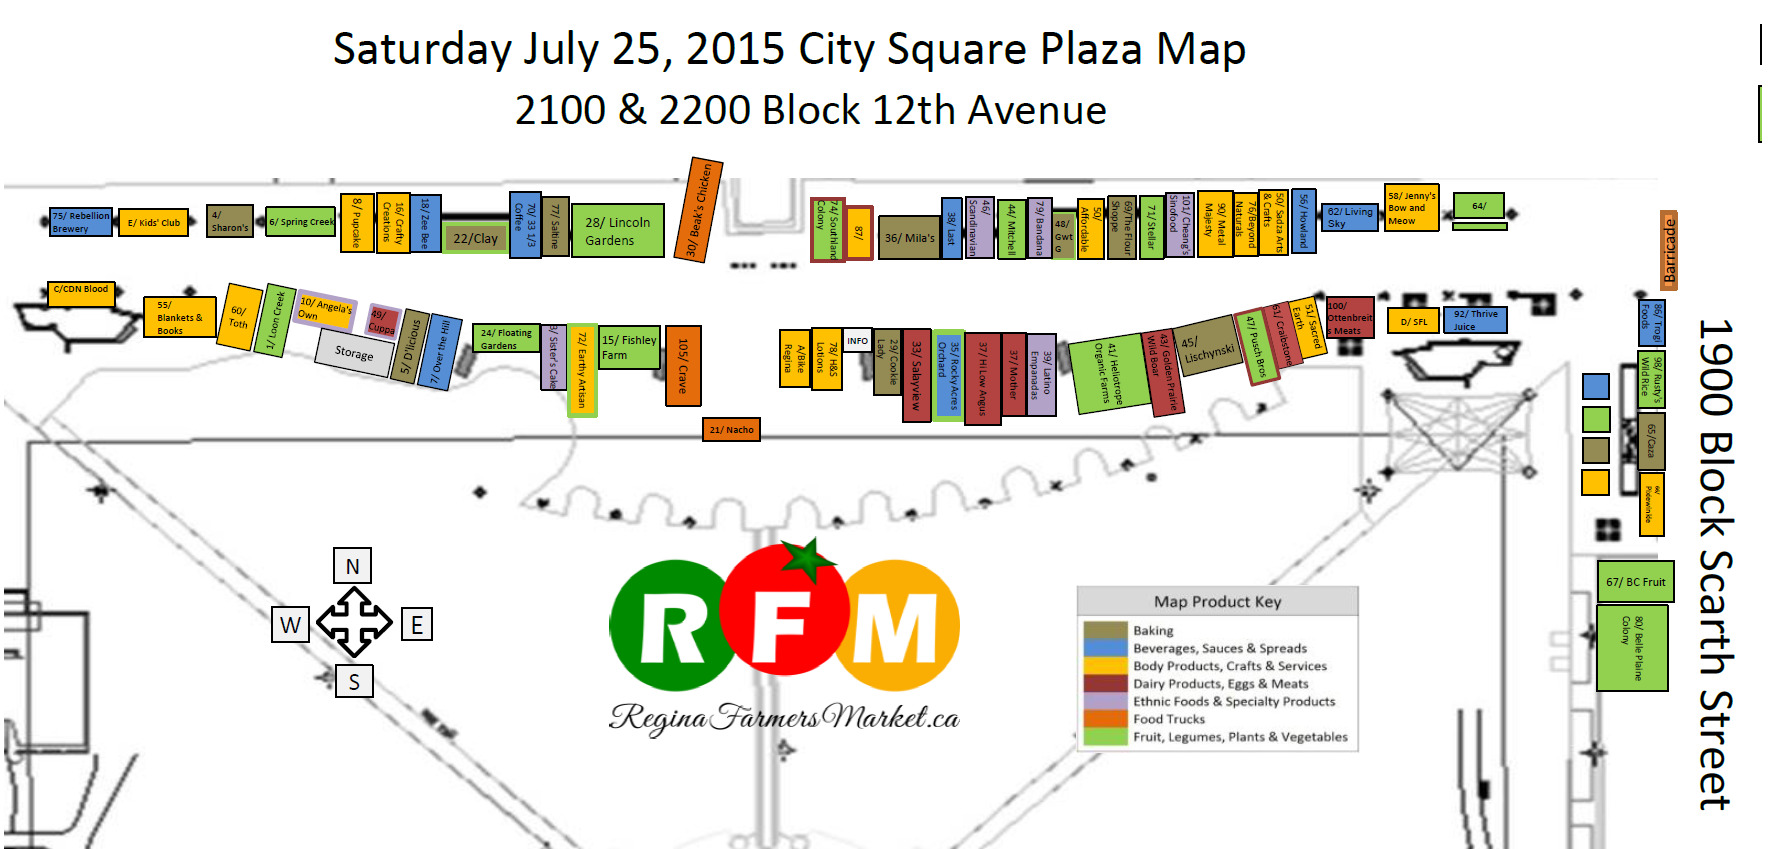 Street Beets July 24th, 2015: Map and Reminder - Image 1